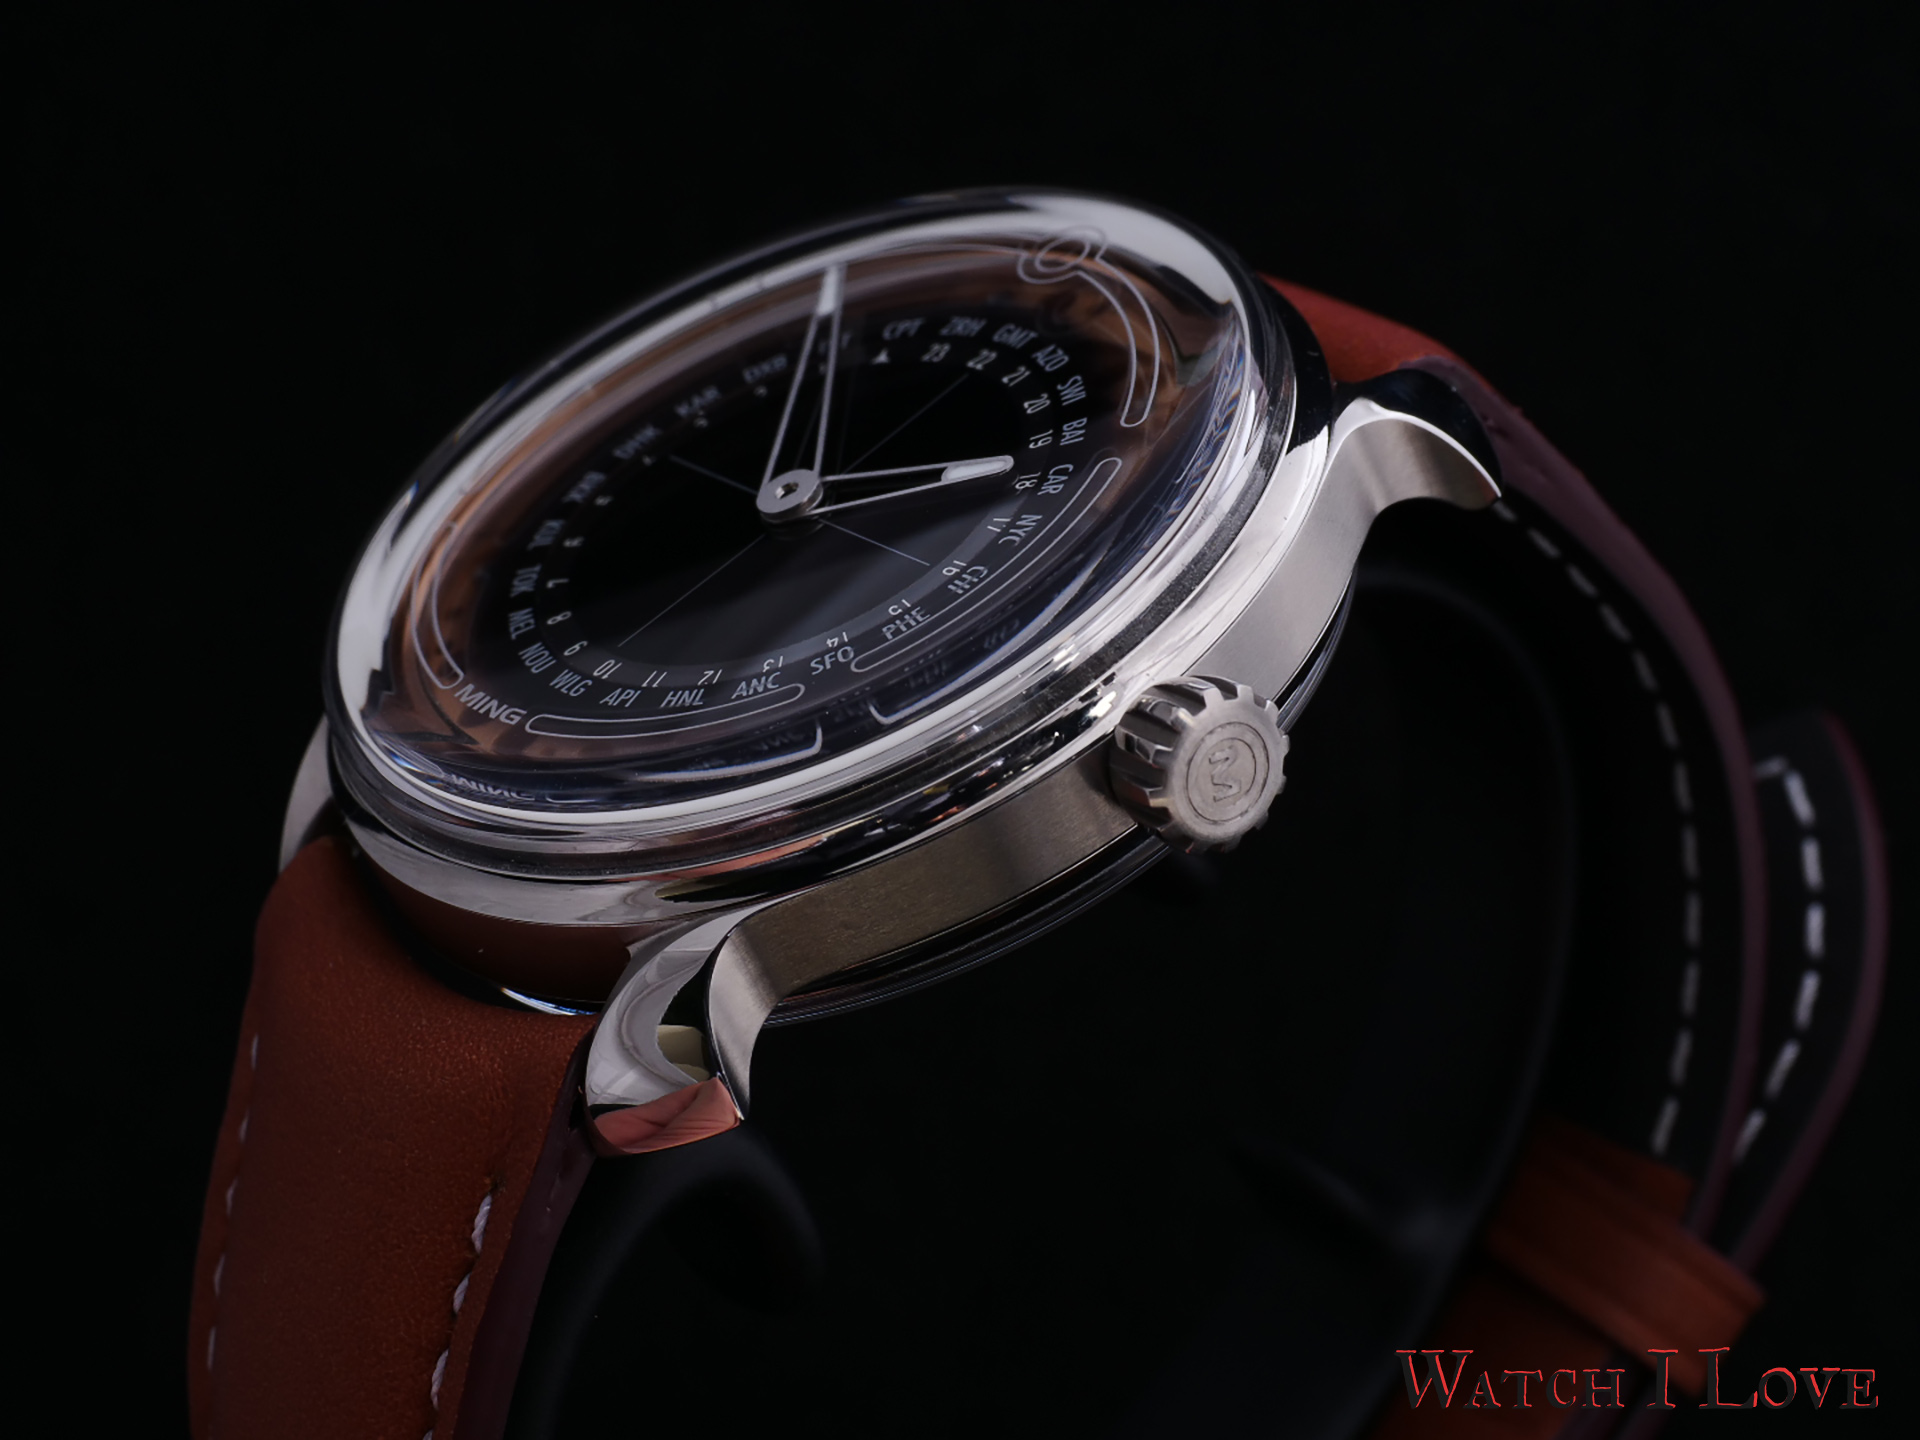 MING 19.02 Worldtimer oblique with crown